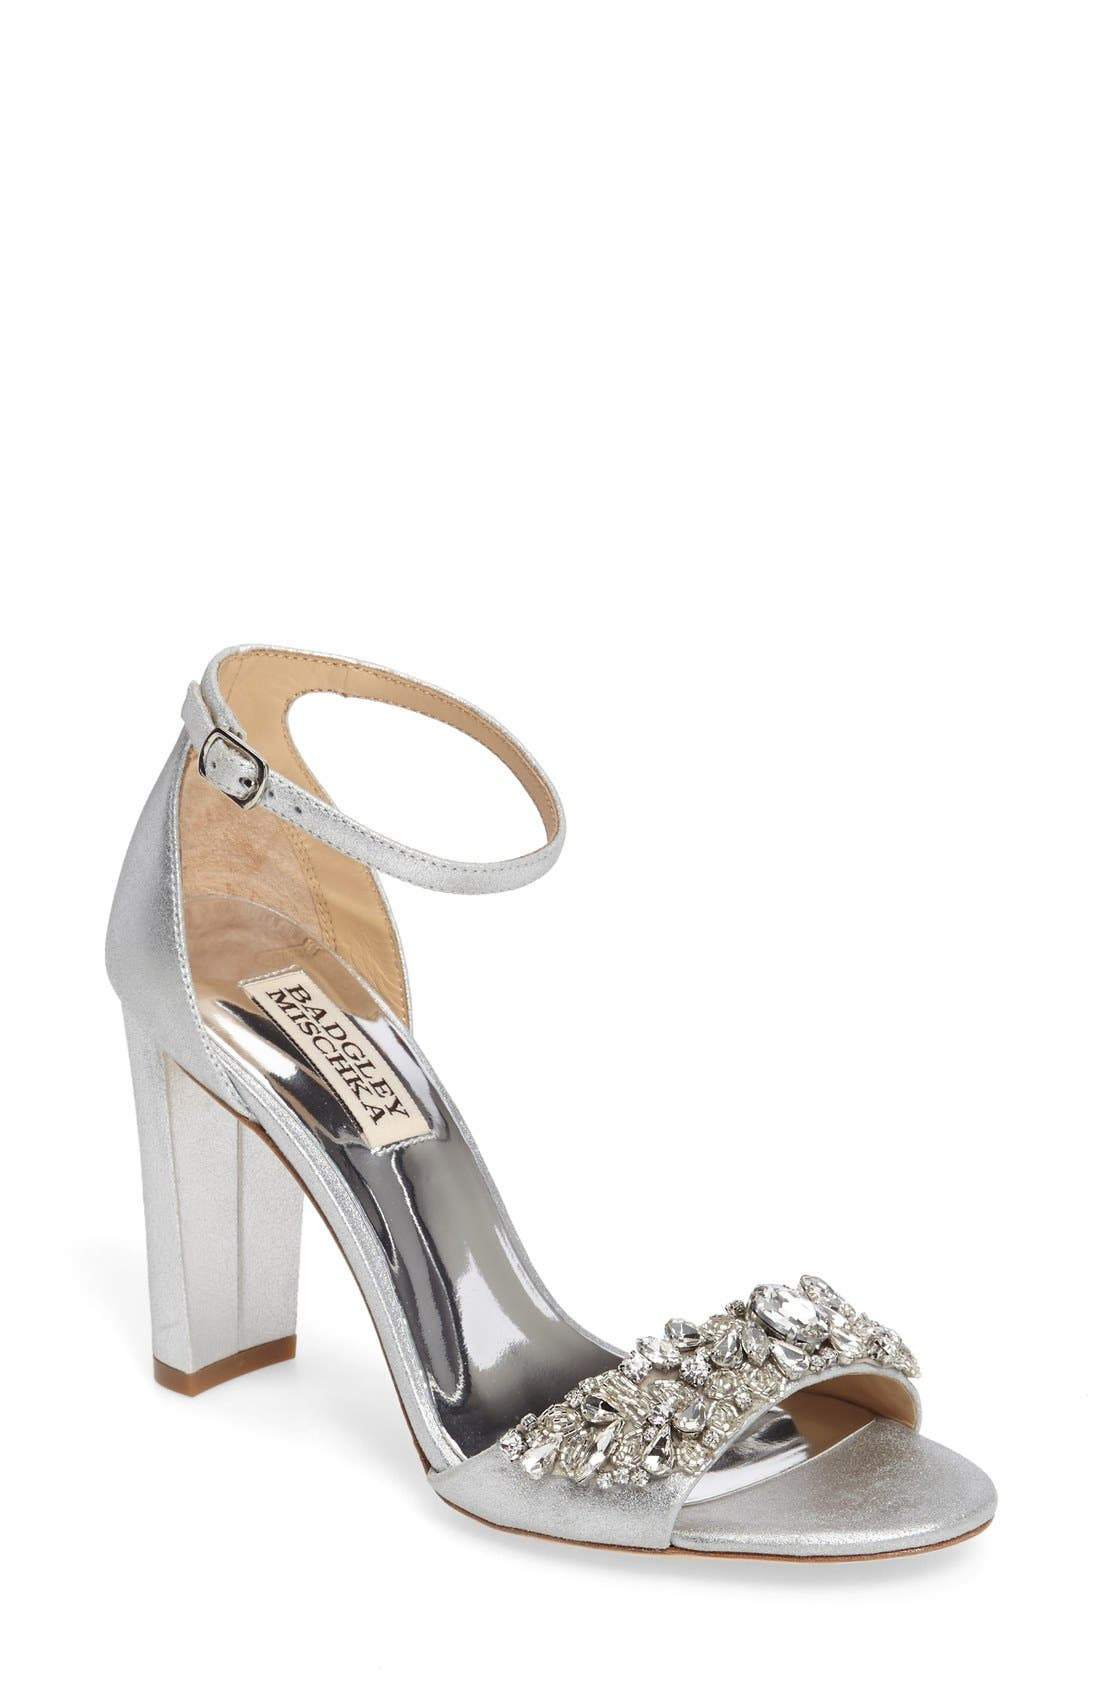 Main Image - Badgley Mischka Barby Ankle Strap Sandal (Women)